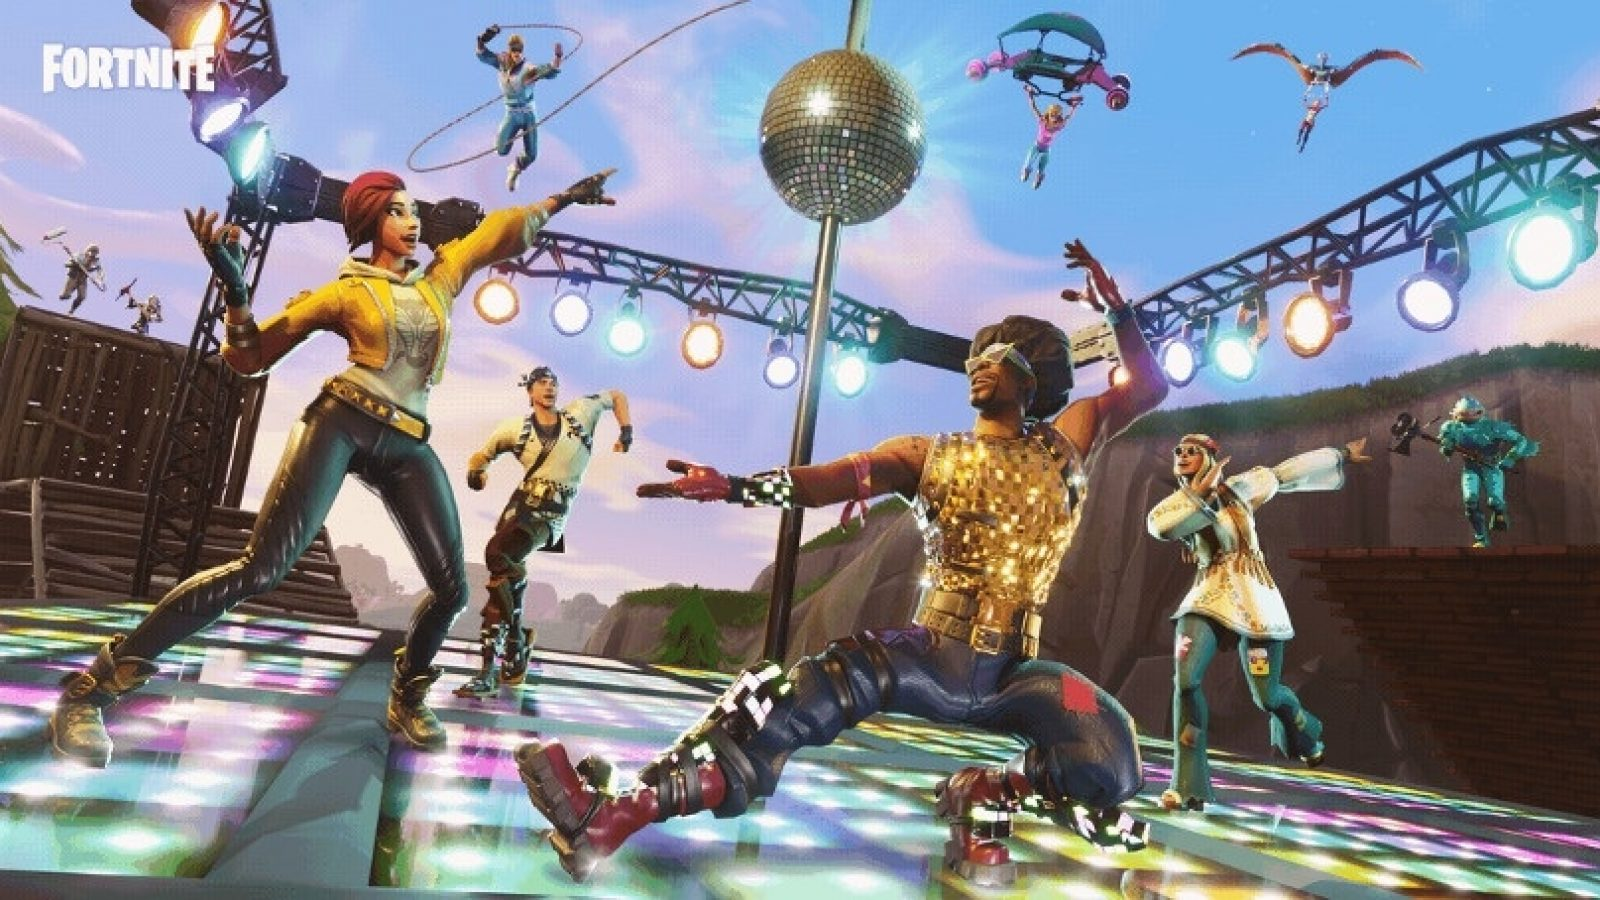 disco-domination-LTM-how-it-works.jpg